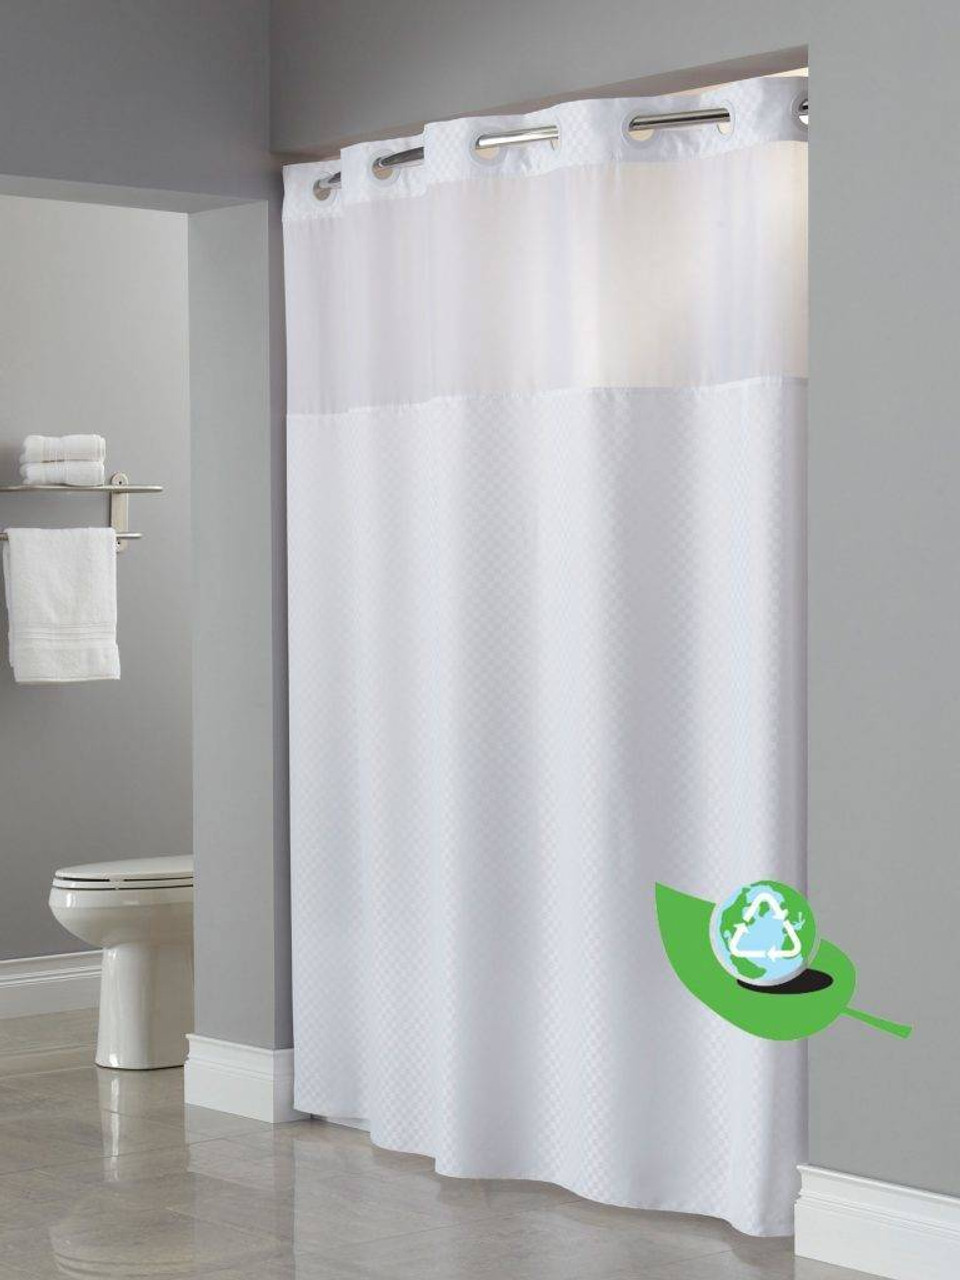 Focus Product Group Daytona One Planet or Hookless or Shower Curtain or Pack of 12